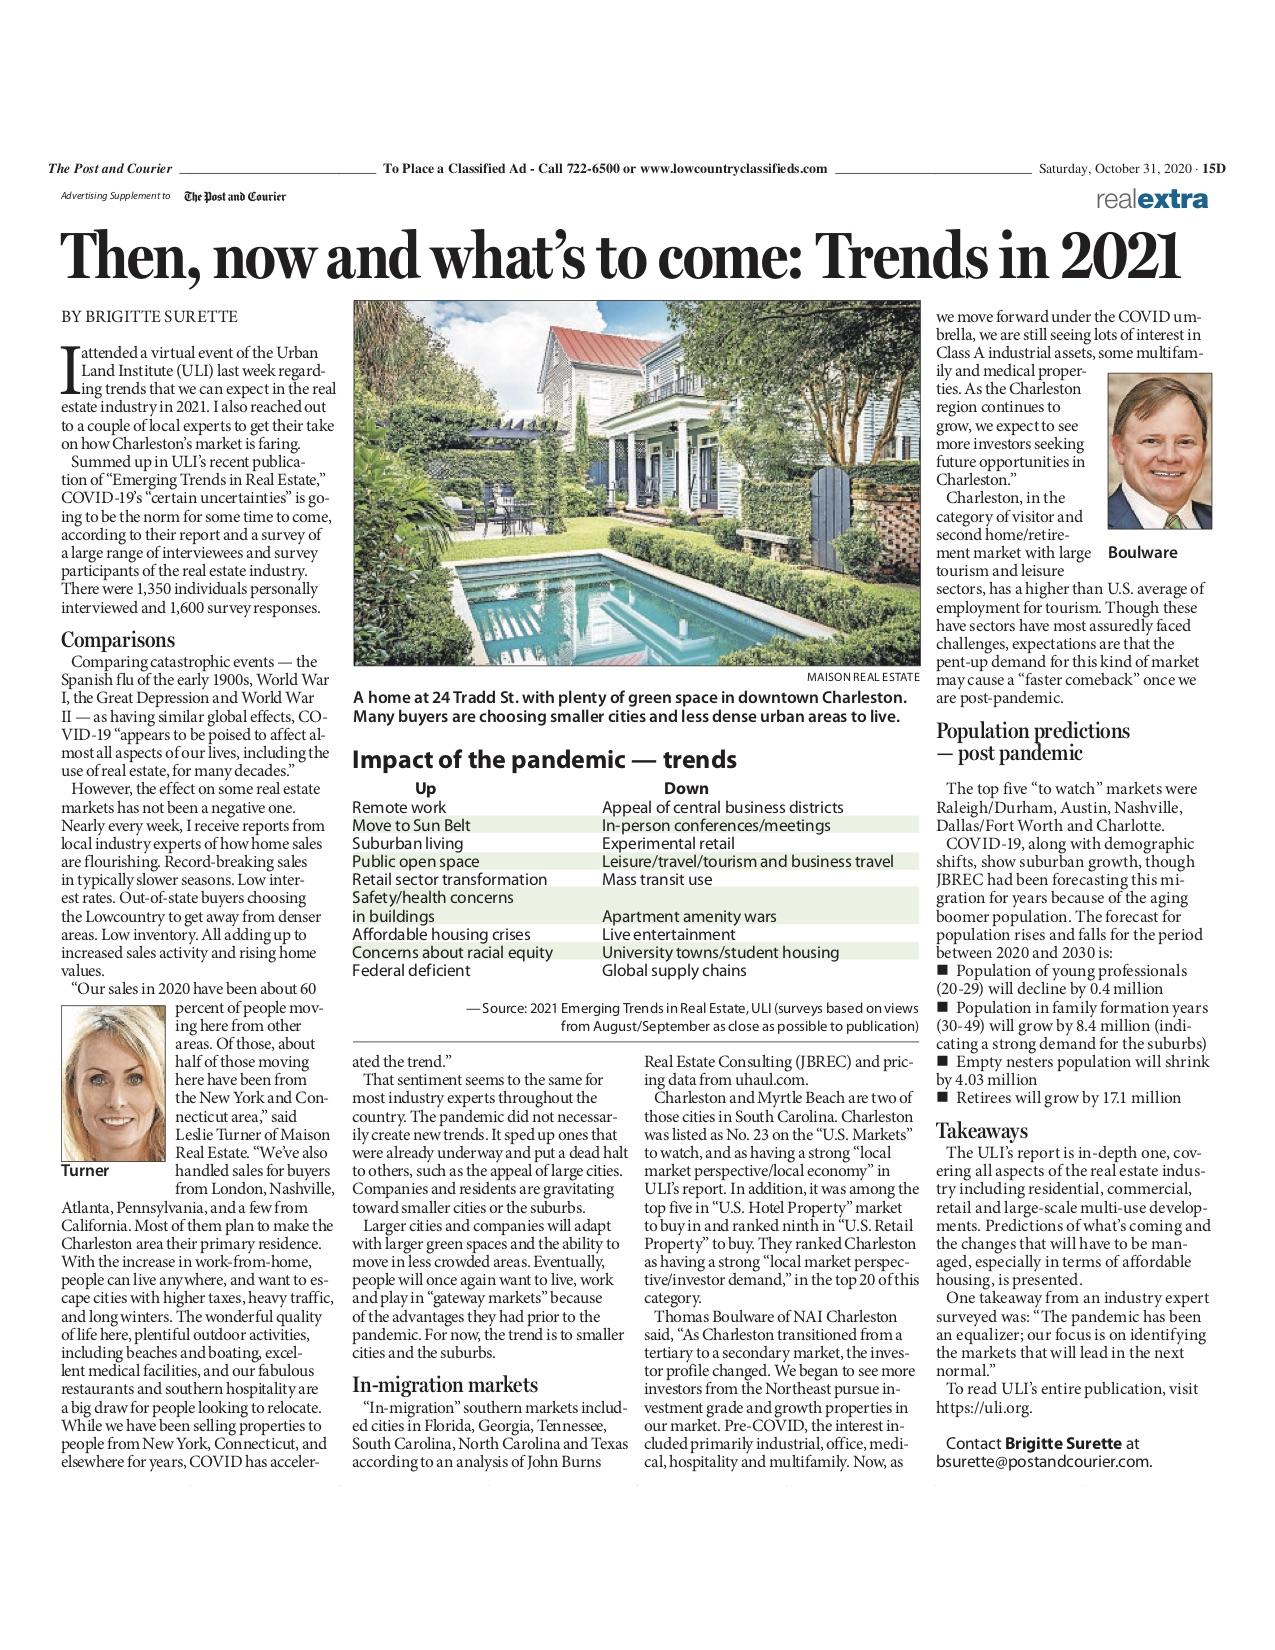 Leslie Turner shares 24 Tradd Street and her thoughts on emerging trends for 2021